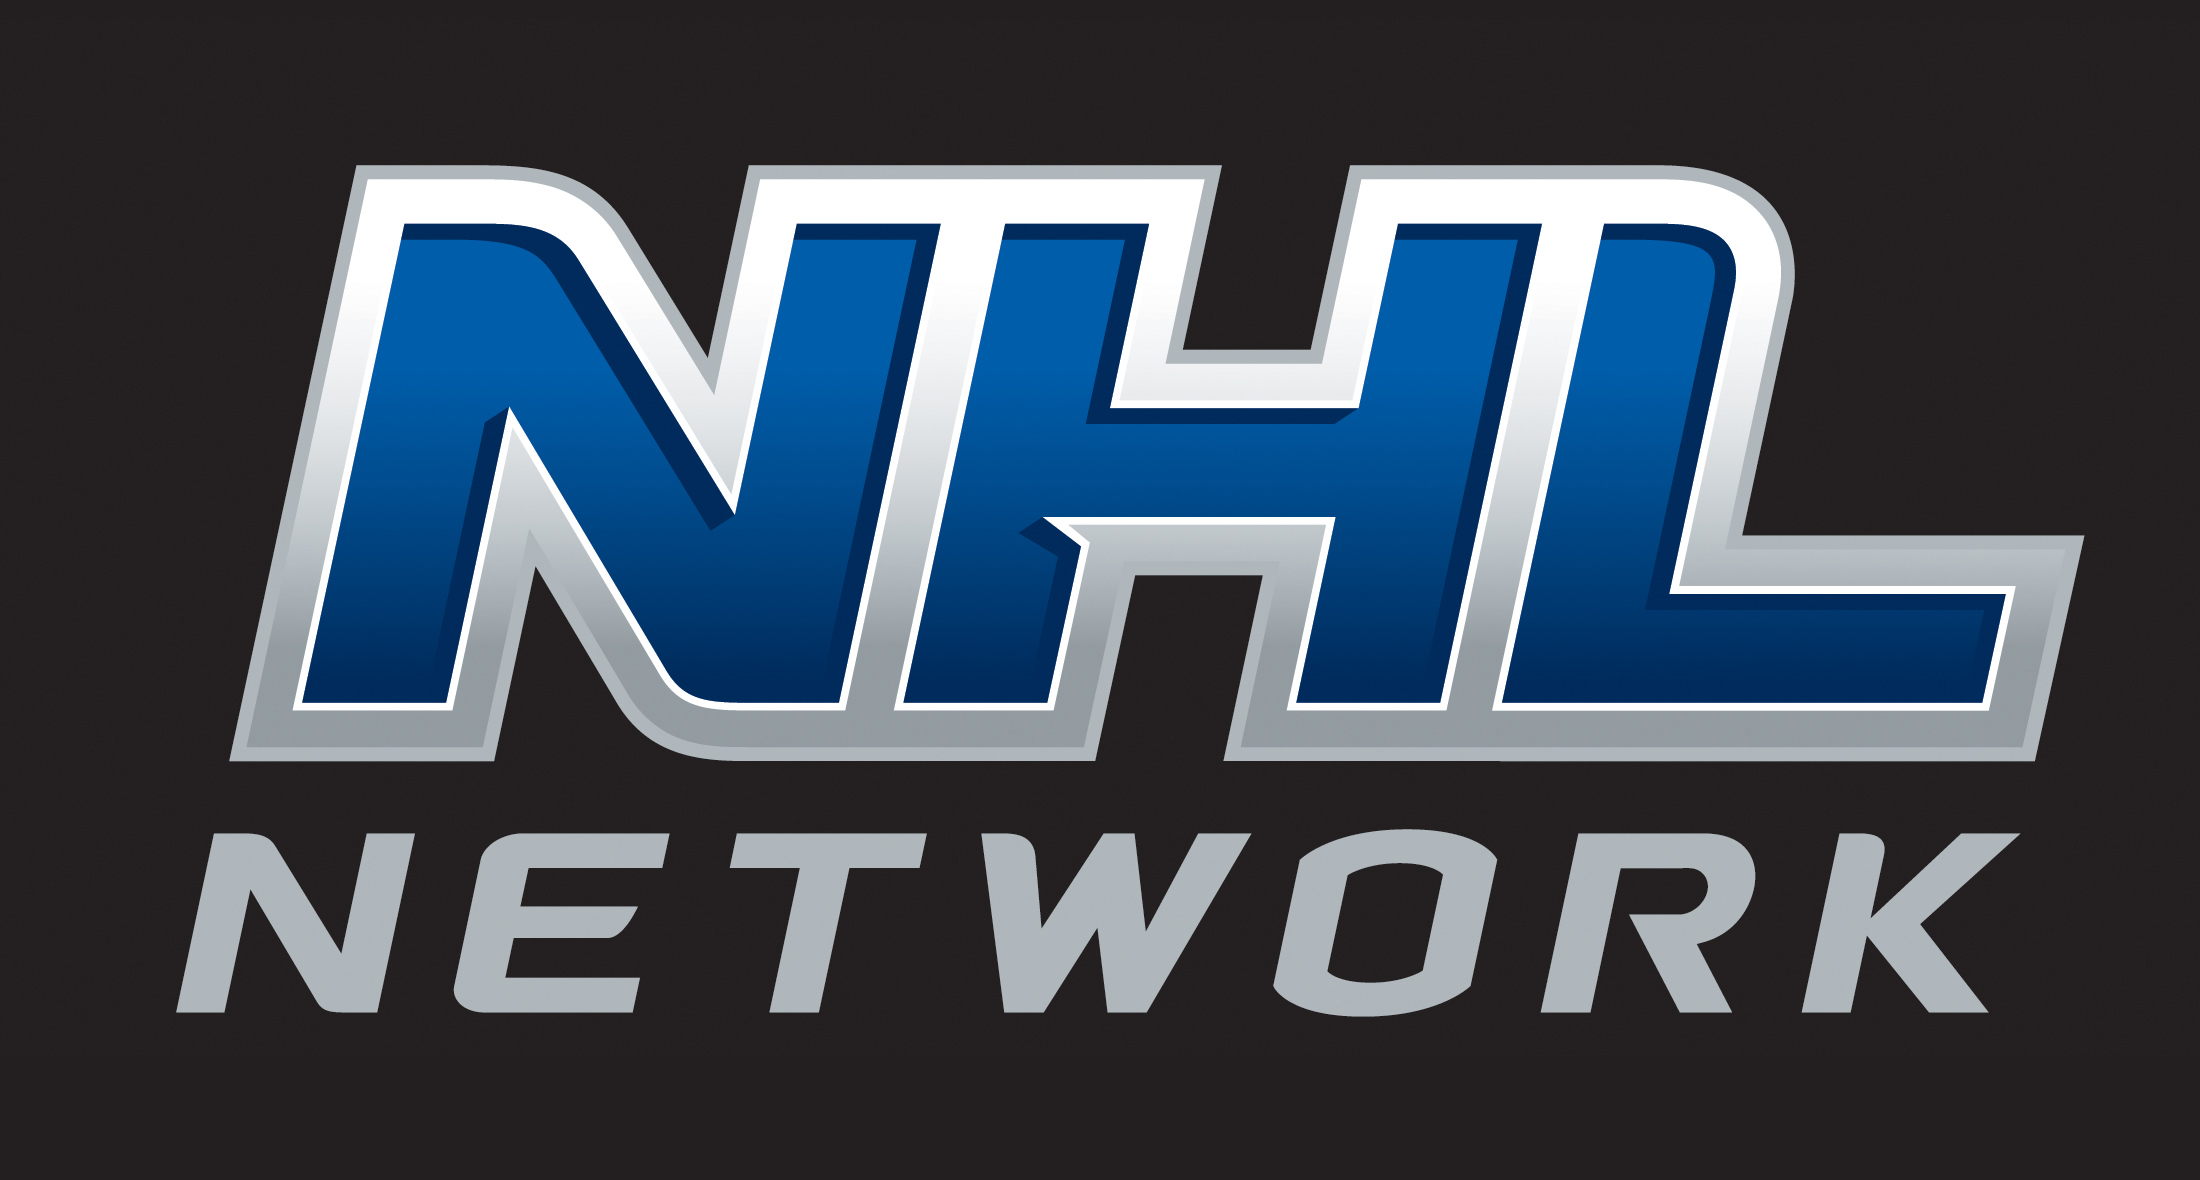 The NHL Network is still the league's